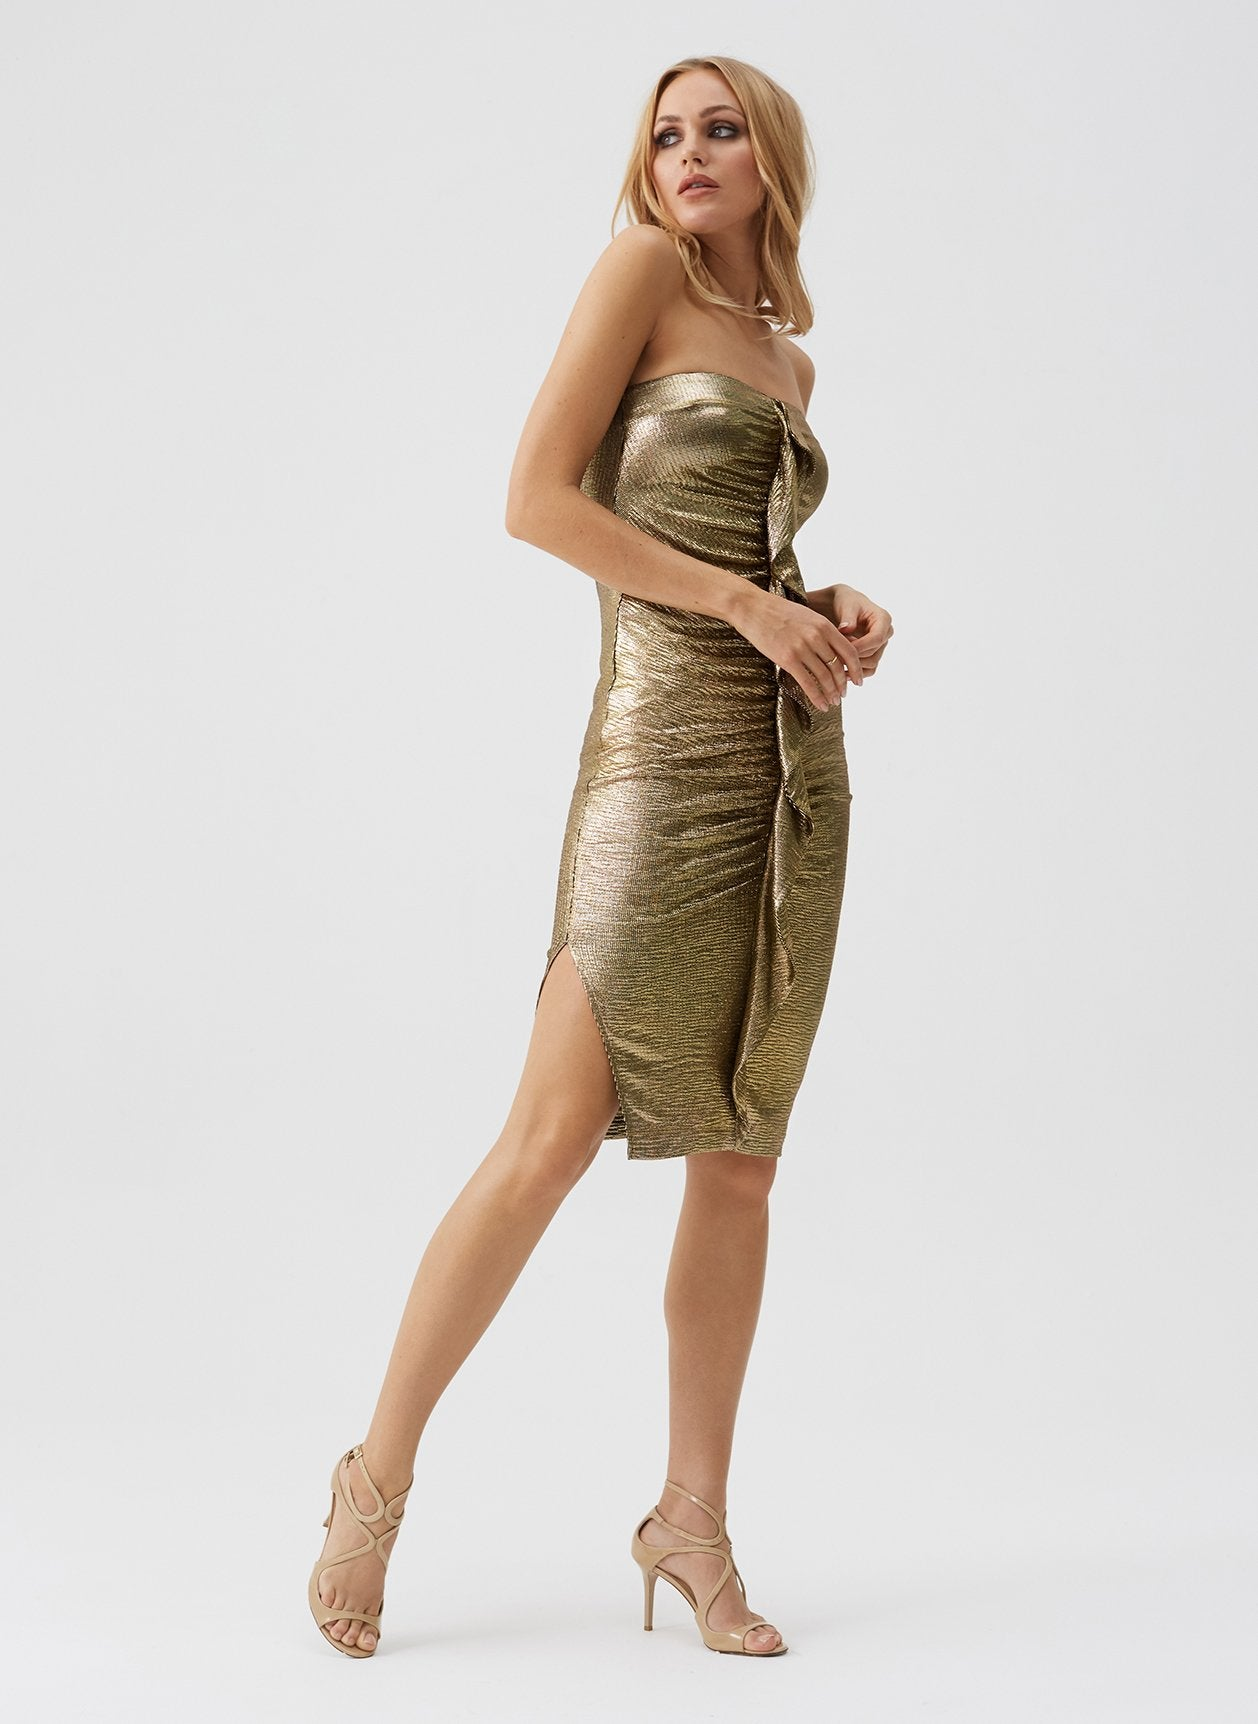 Dru Gold Strapless Midi Dress